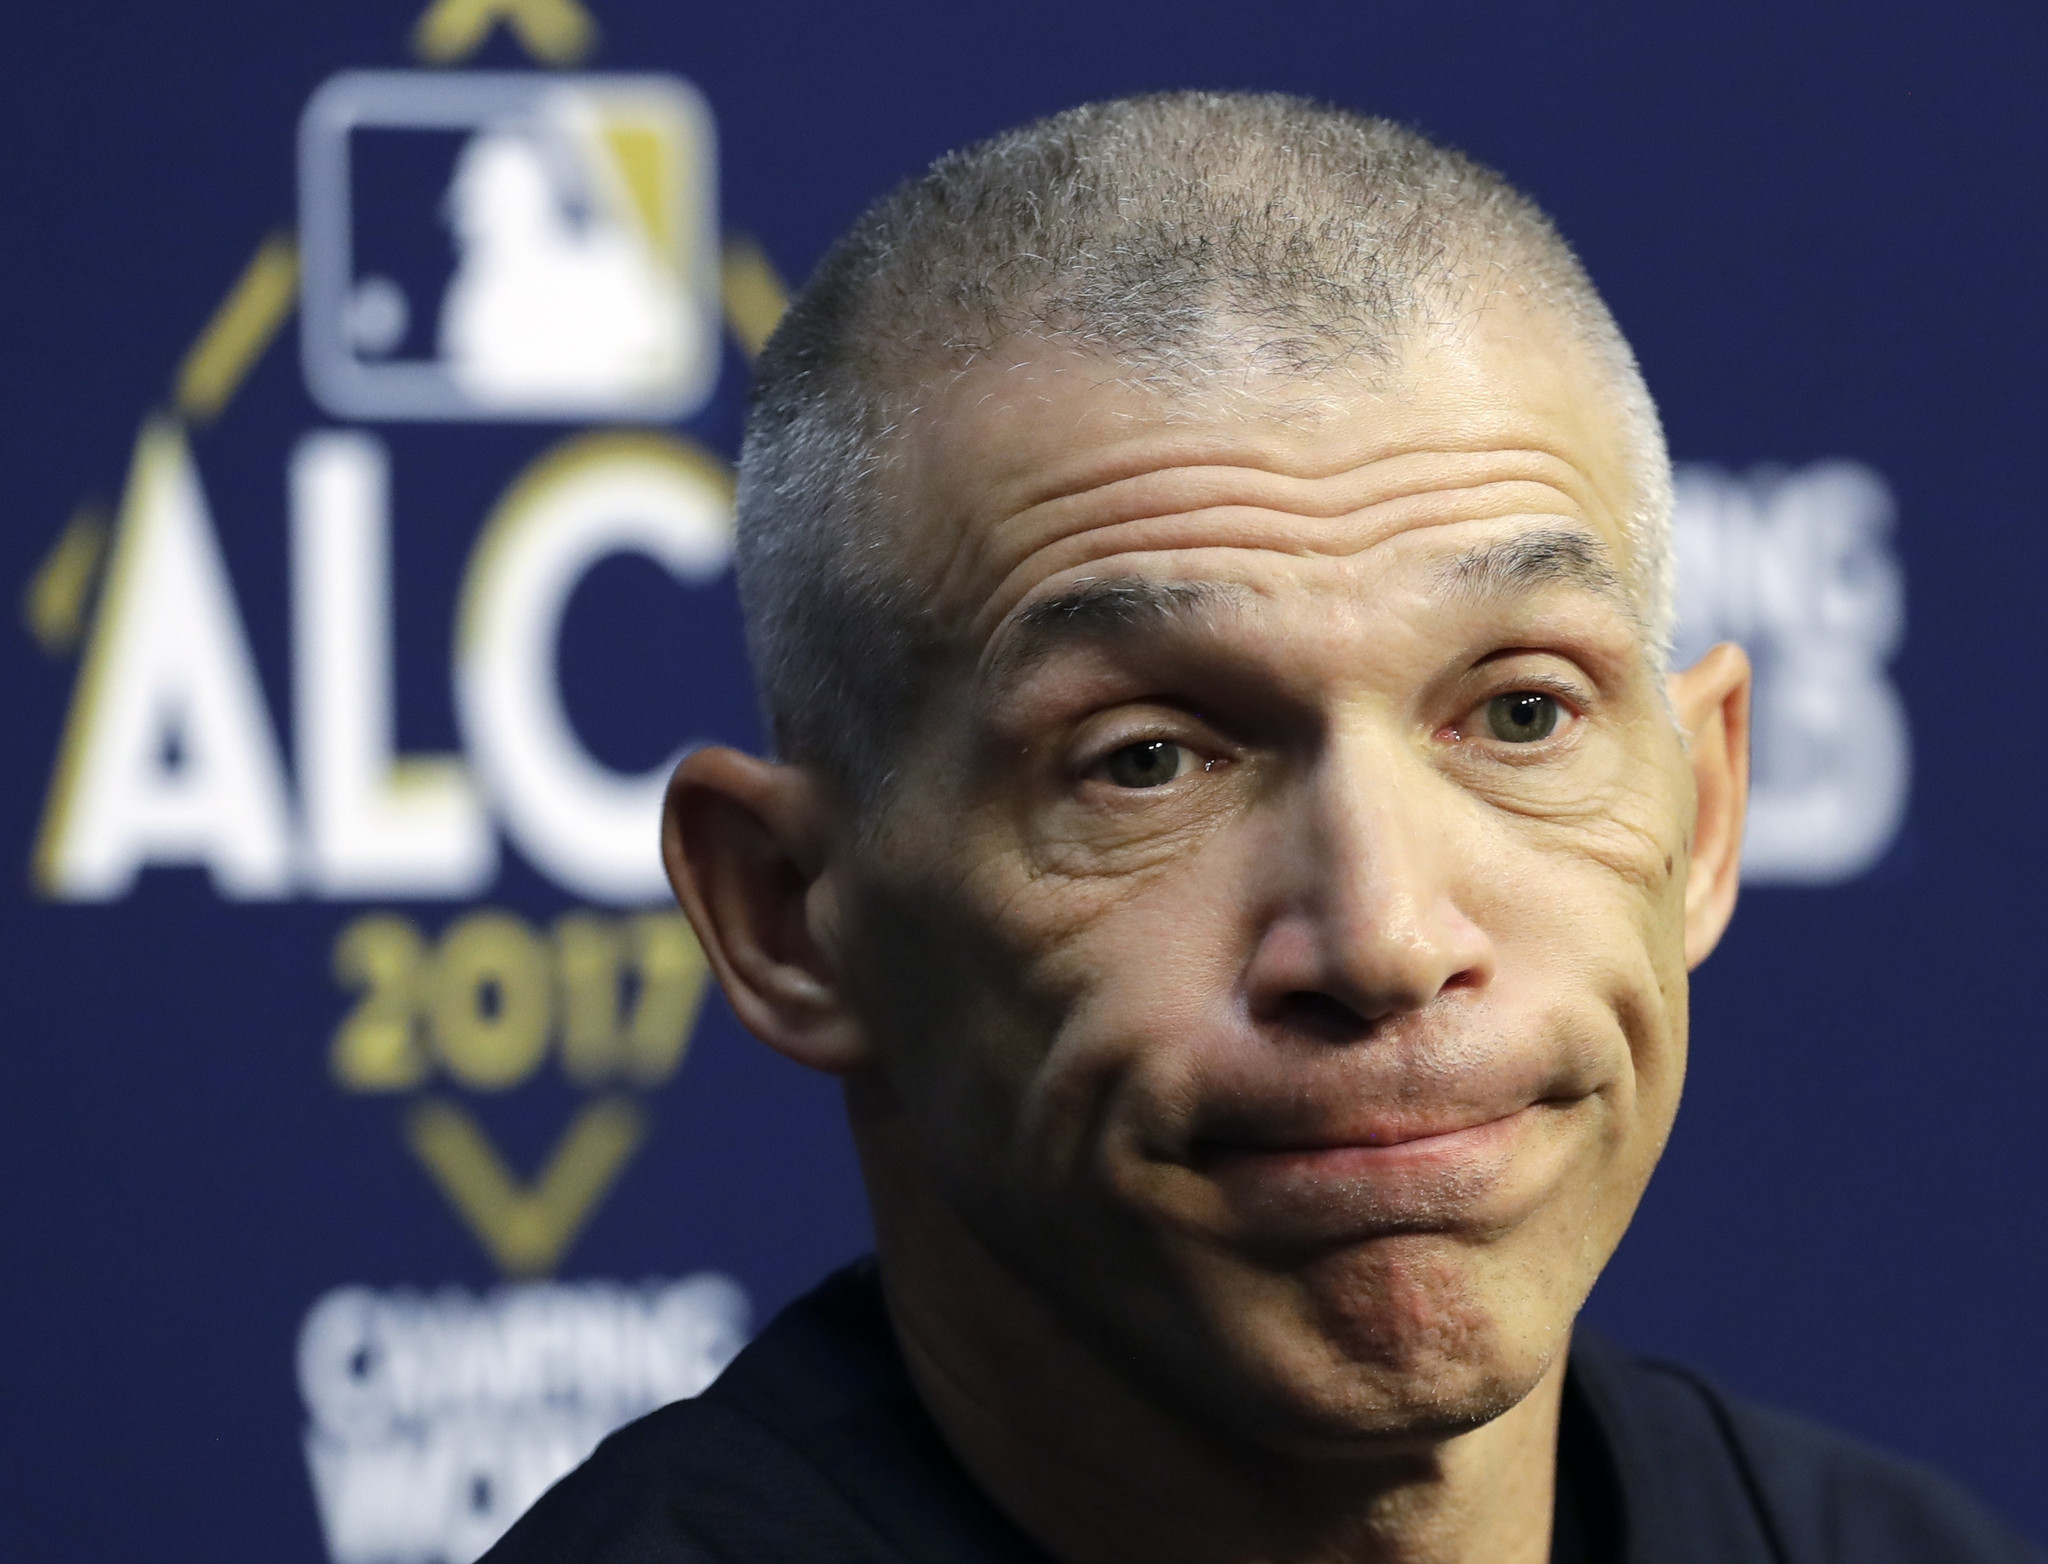 joe girardi pushed out by yankees after 10 seasons as